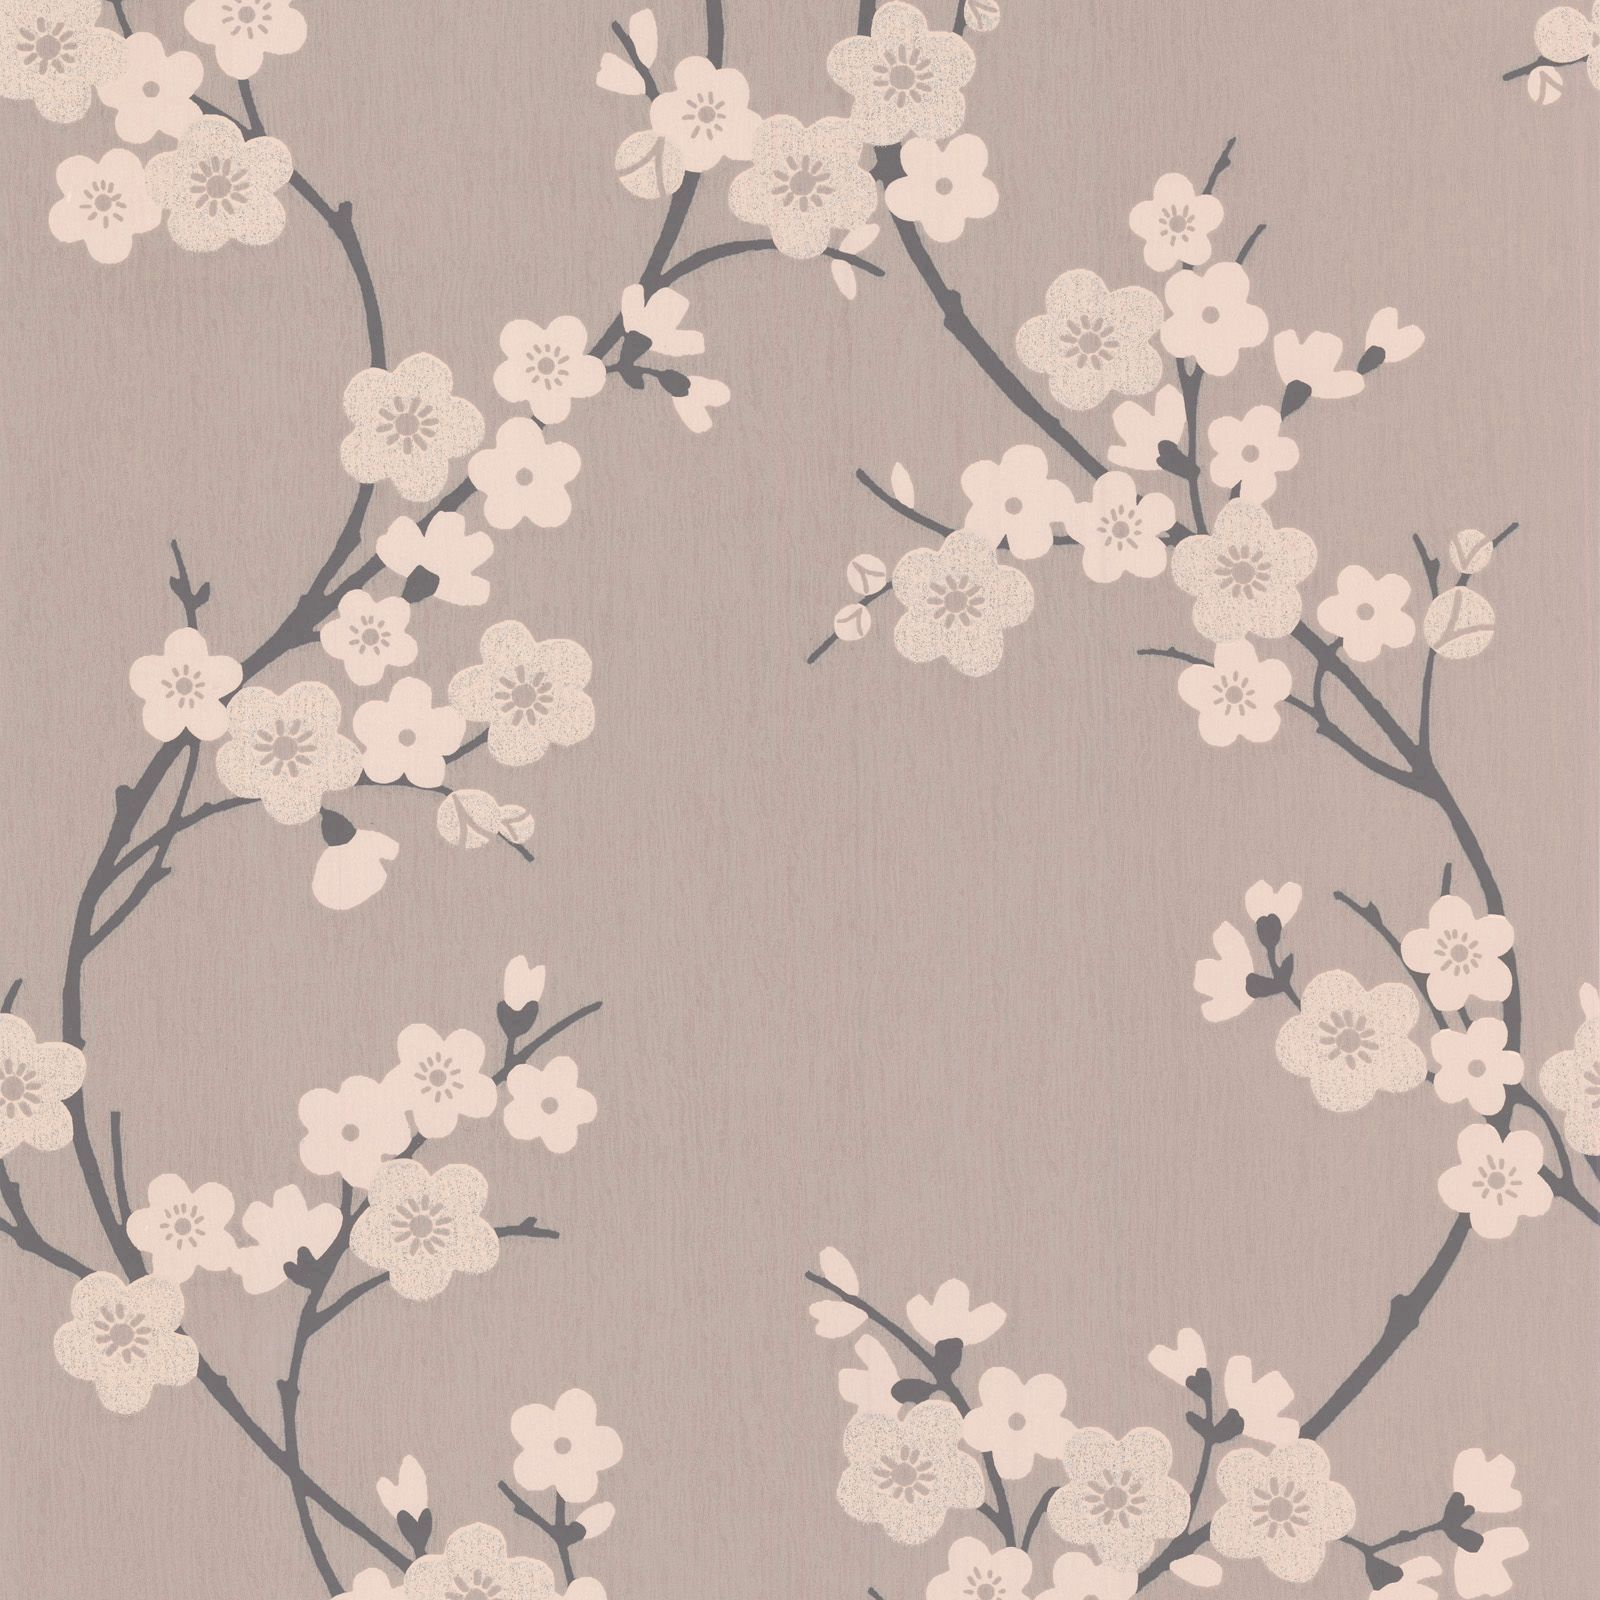 Super Fresco Paste The Paper Cherry Blossom Charcoal Taupe